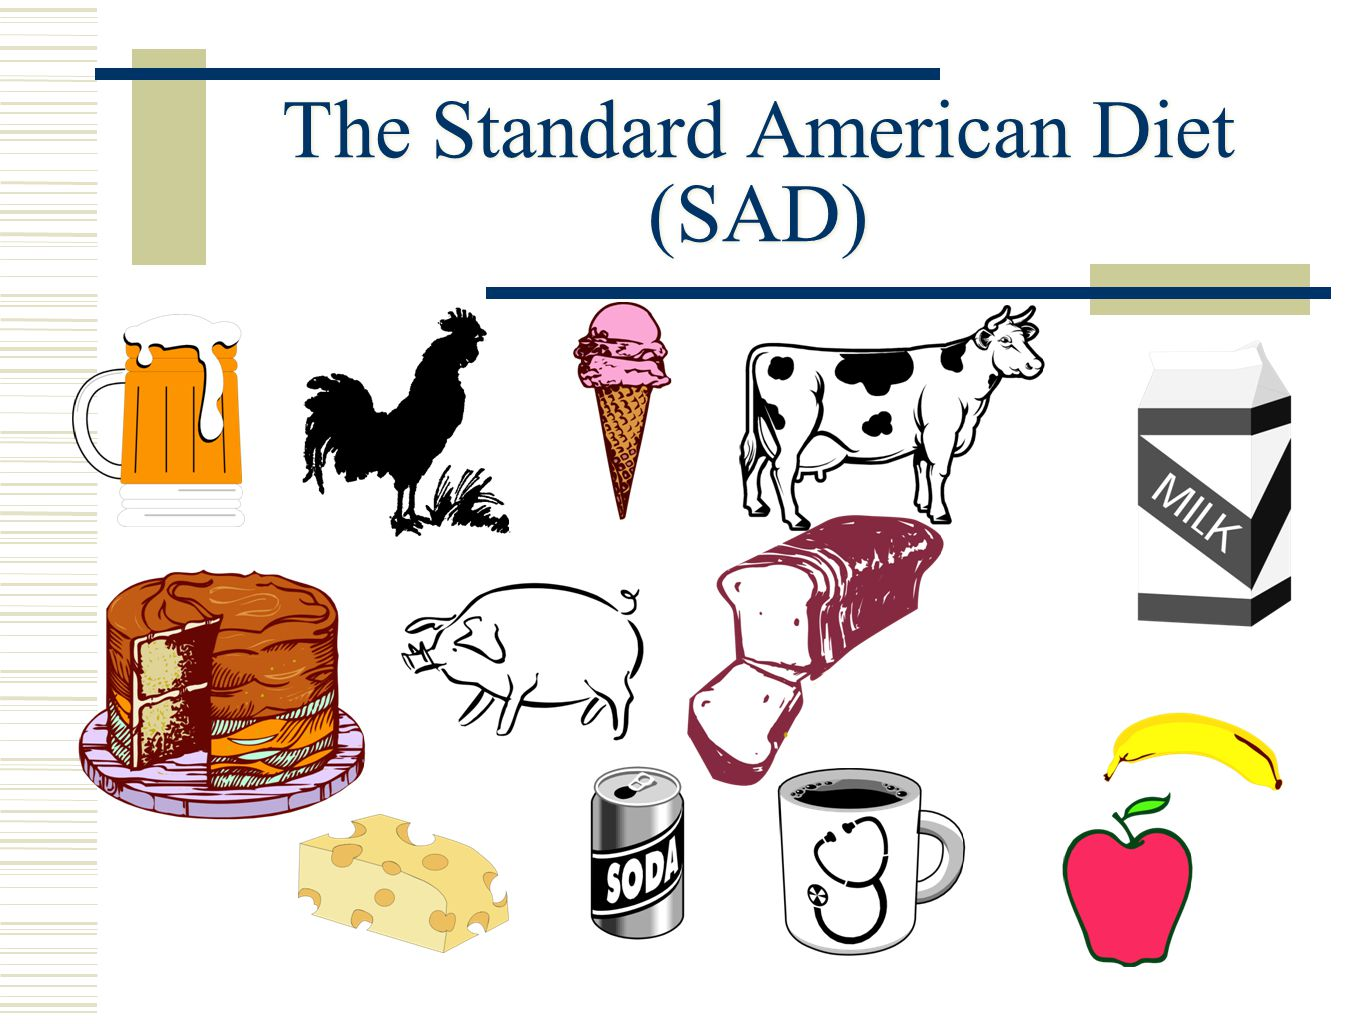 The Standard American Diet (SAD) 